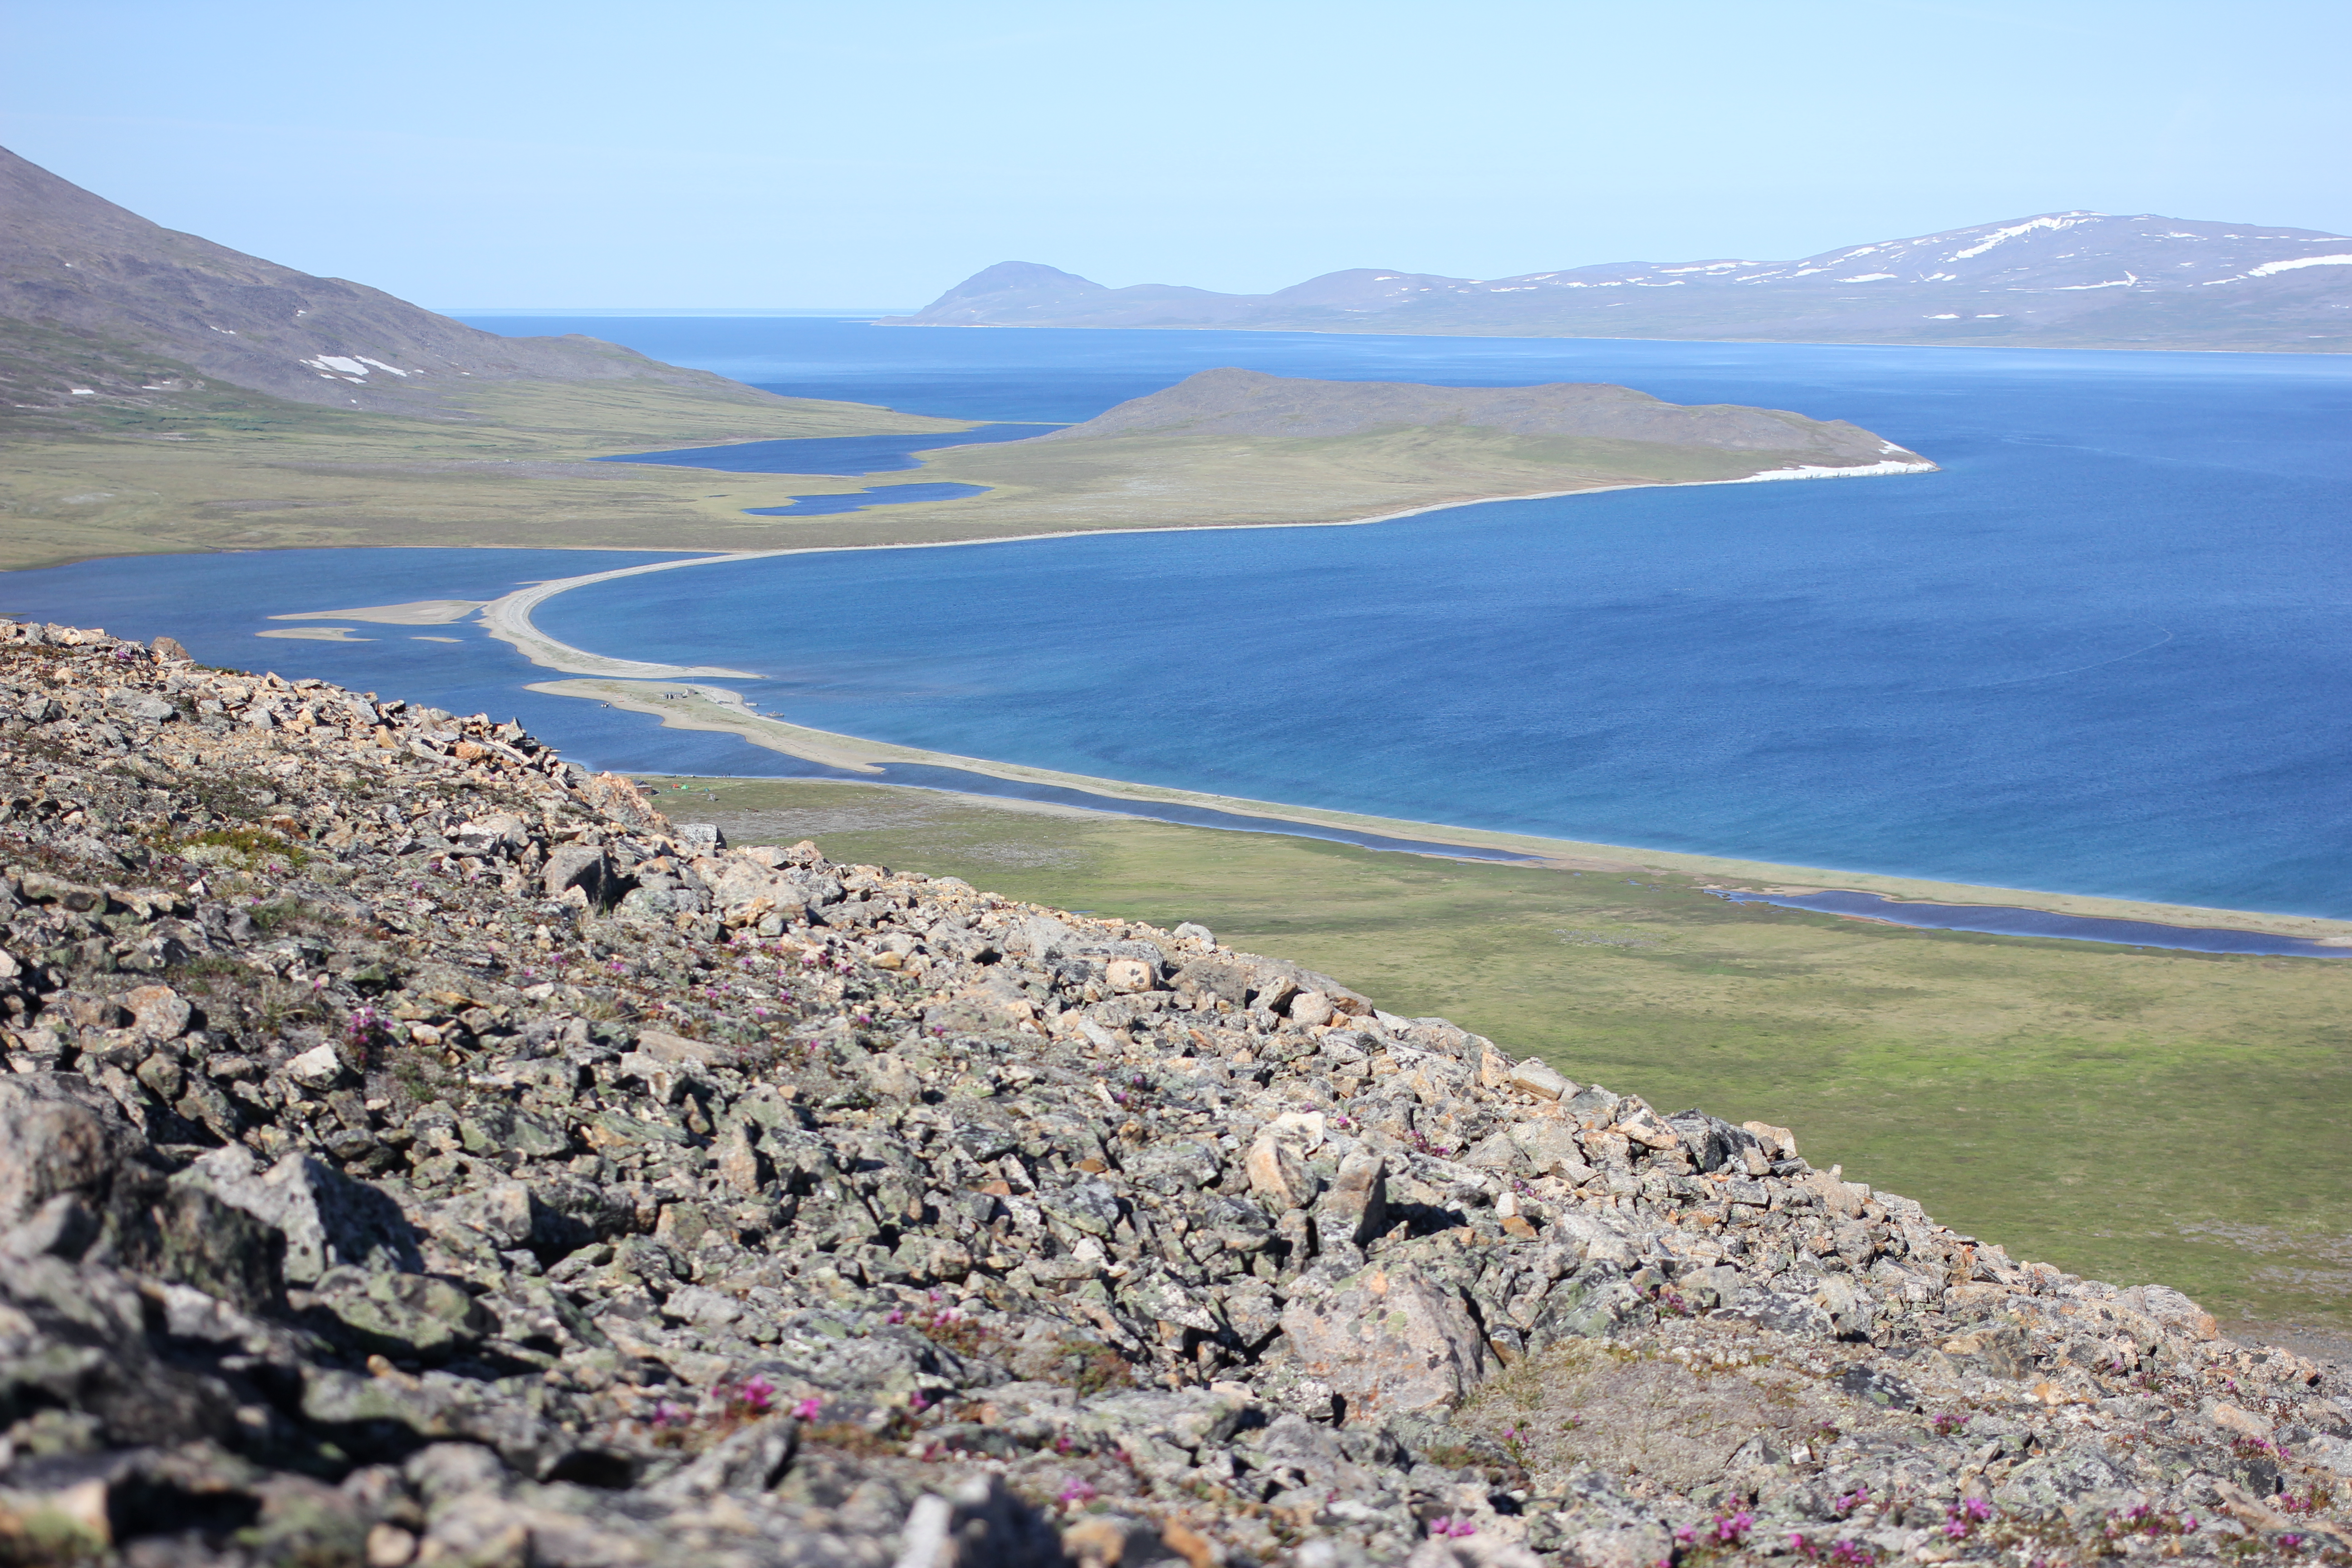 Mission to Chukotka: The journey north